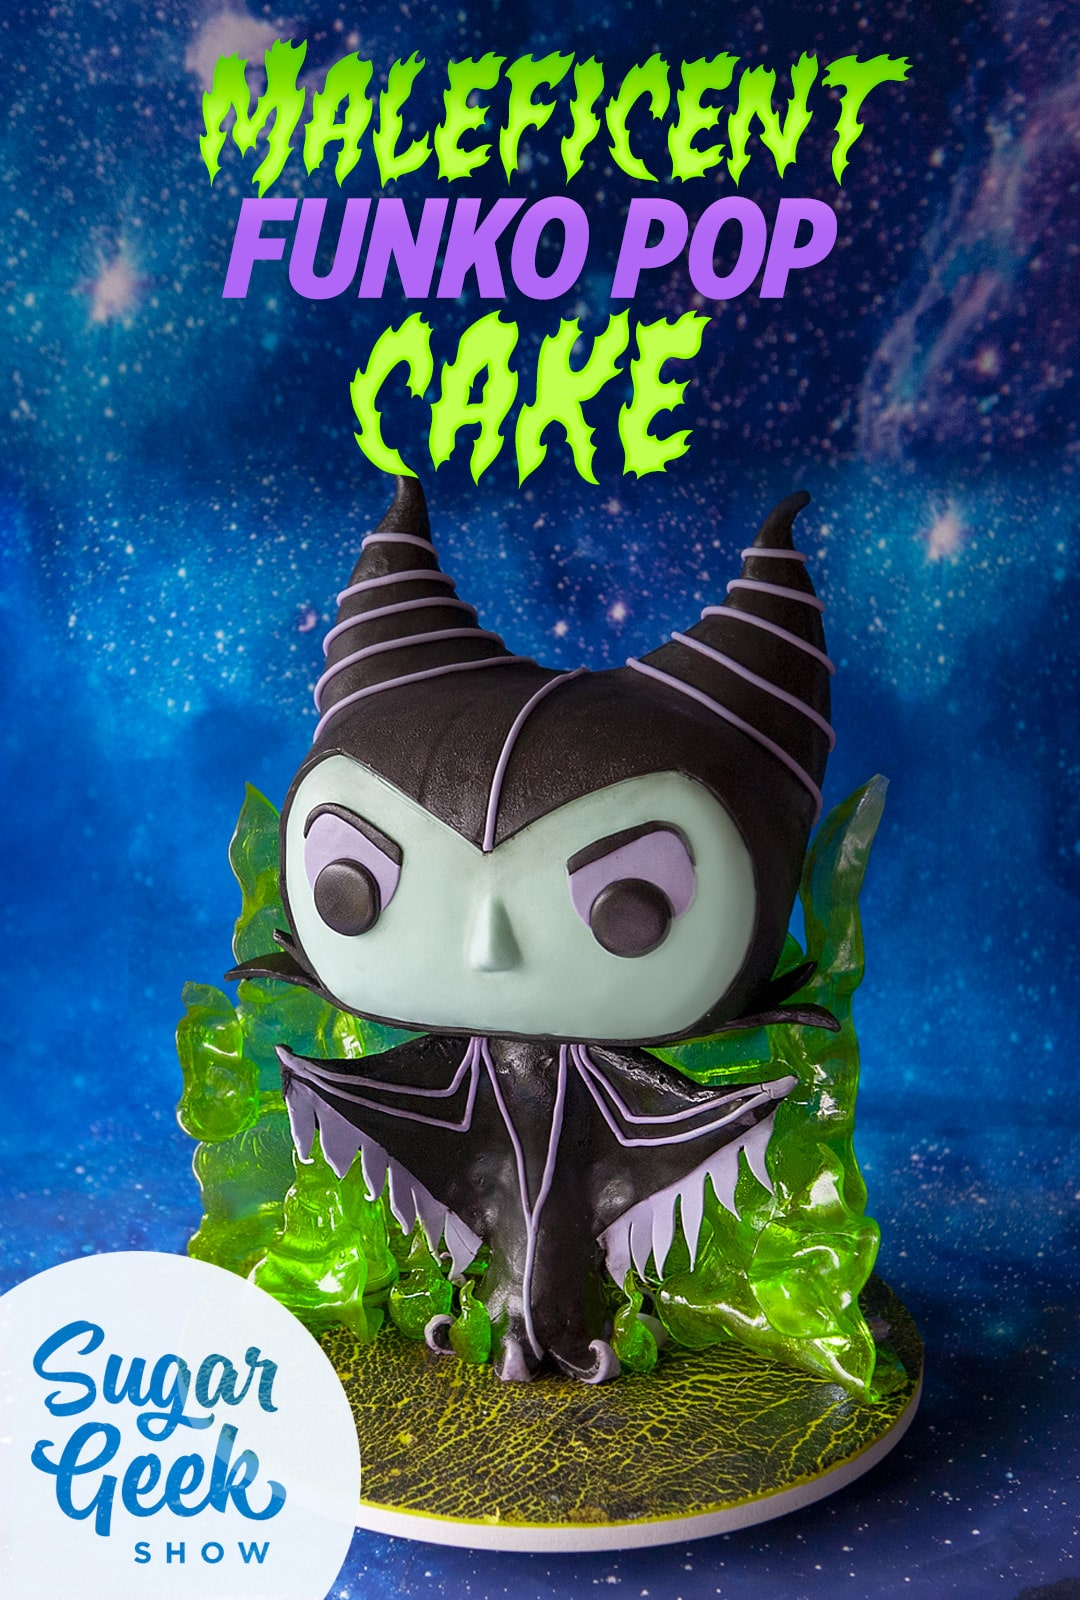 Cake sculpted to look like a funko pop maleficent figurine